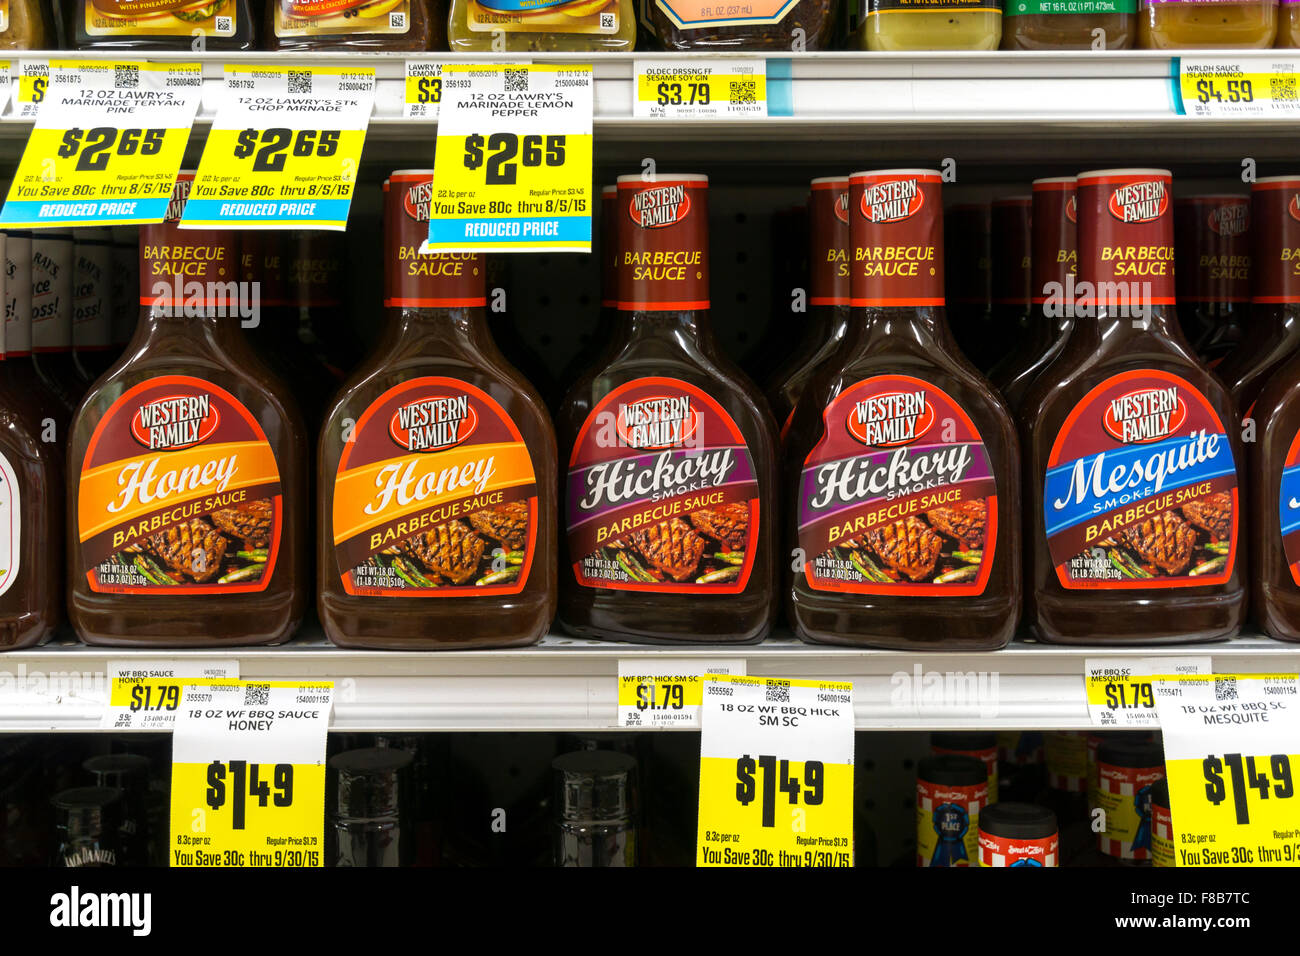 Good Barbecue Sauce For Sale Part - 13: Bottles Of Barbecue Sauce For Sale On Shelves Of A Western Family  Supermarket In Montana, USA